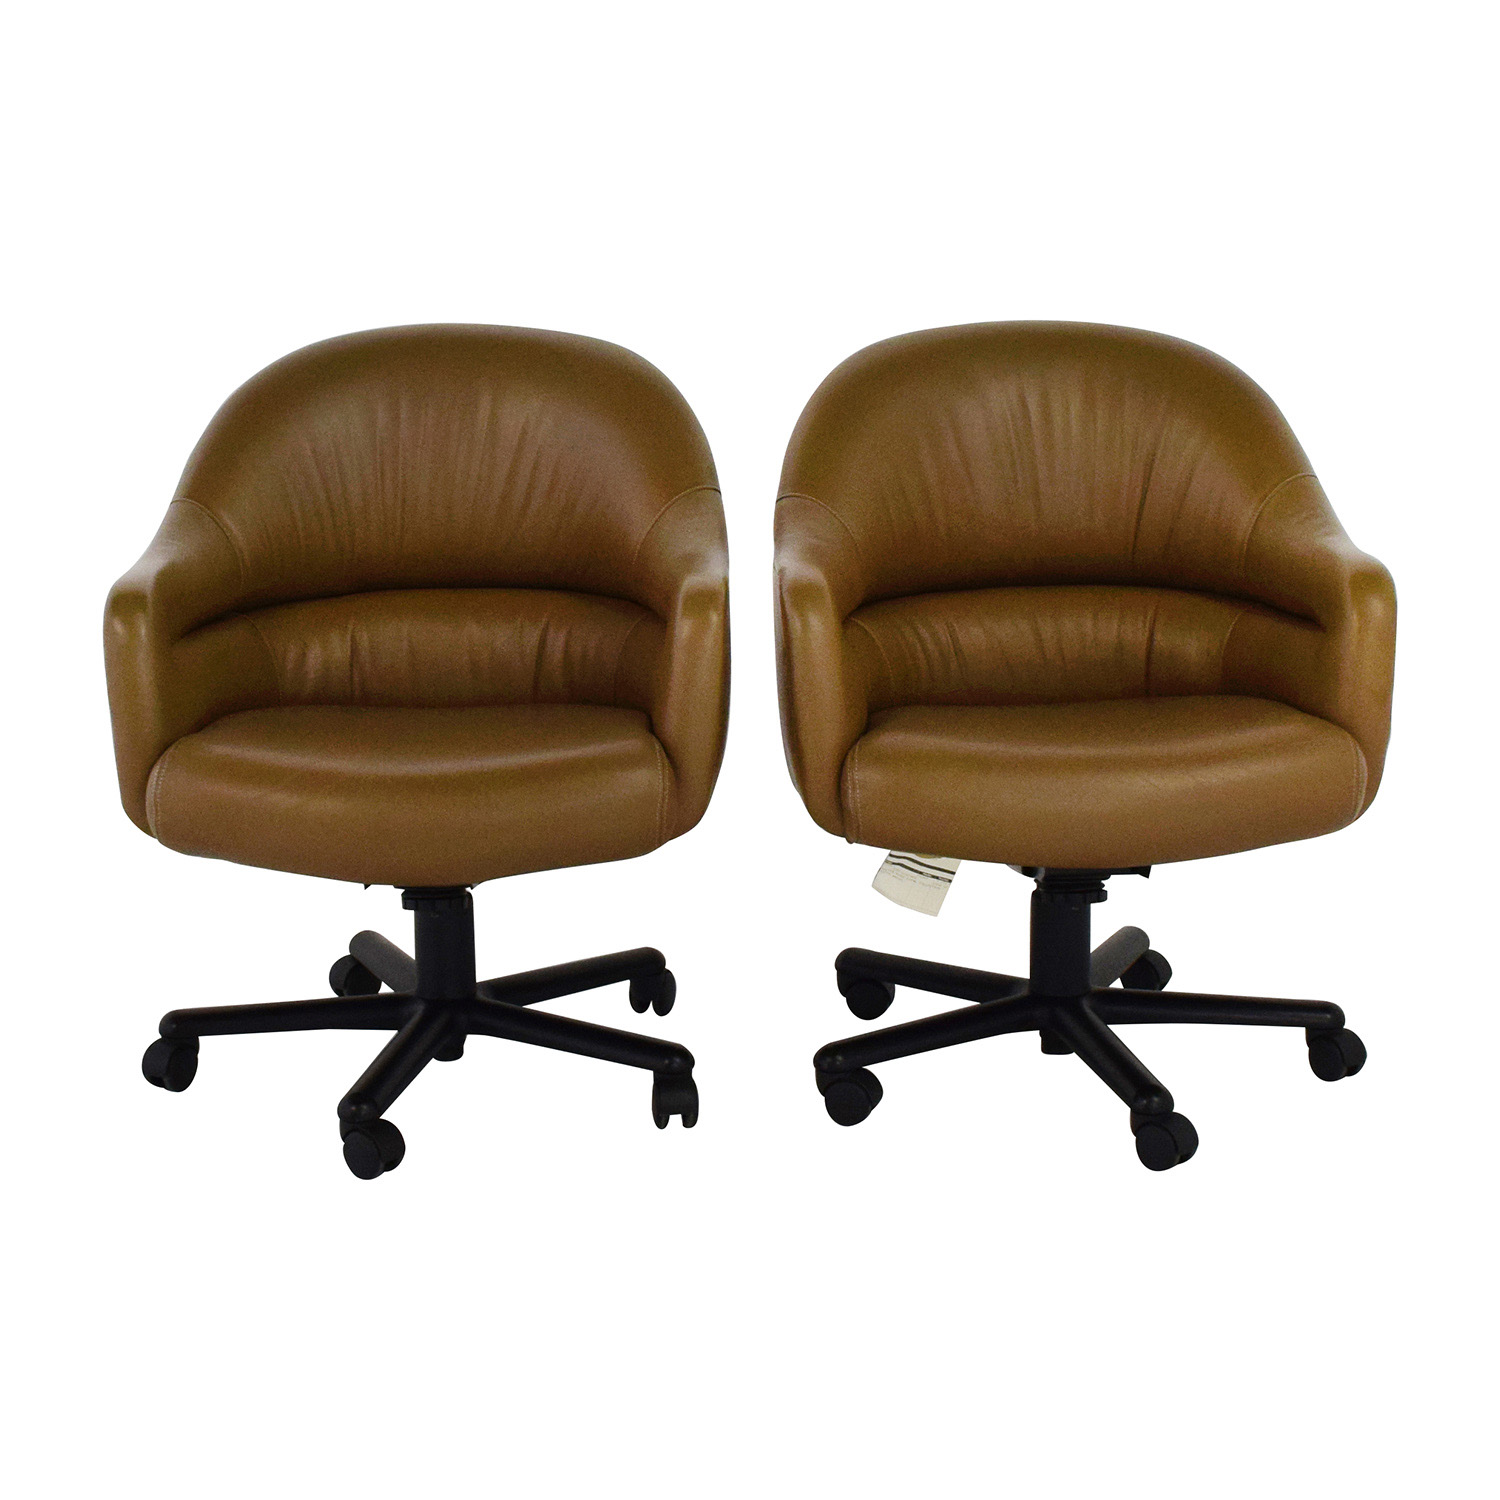 85% OFF Pair of Brown Leather fice Chairs Chairs